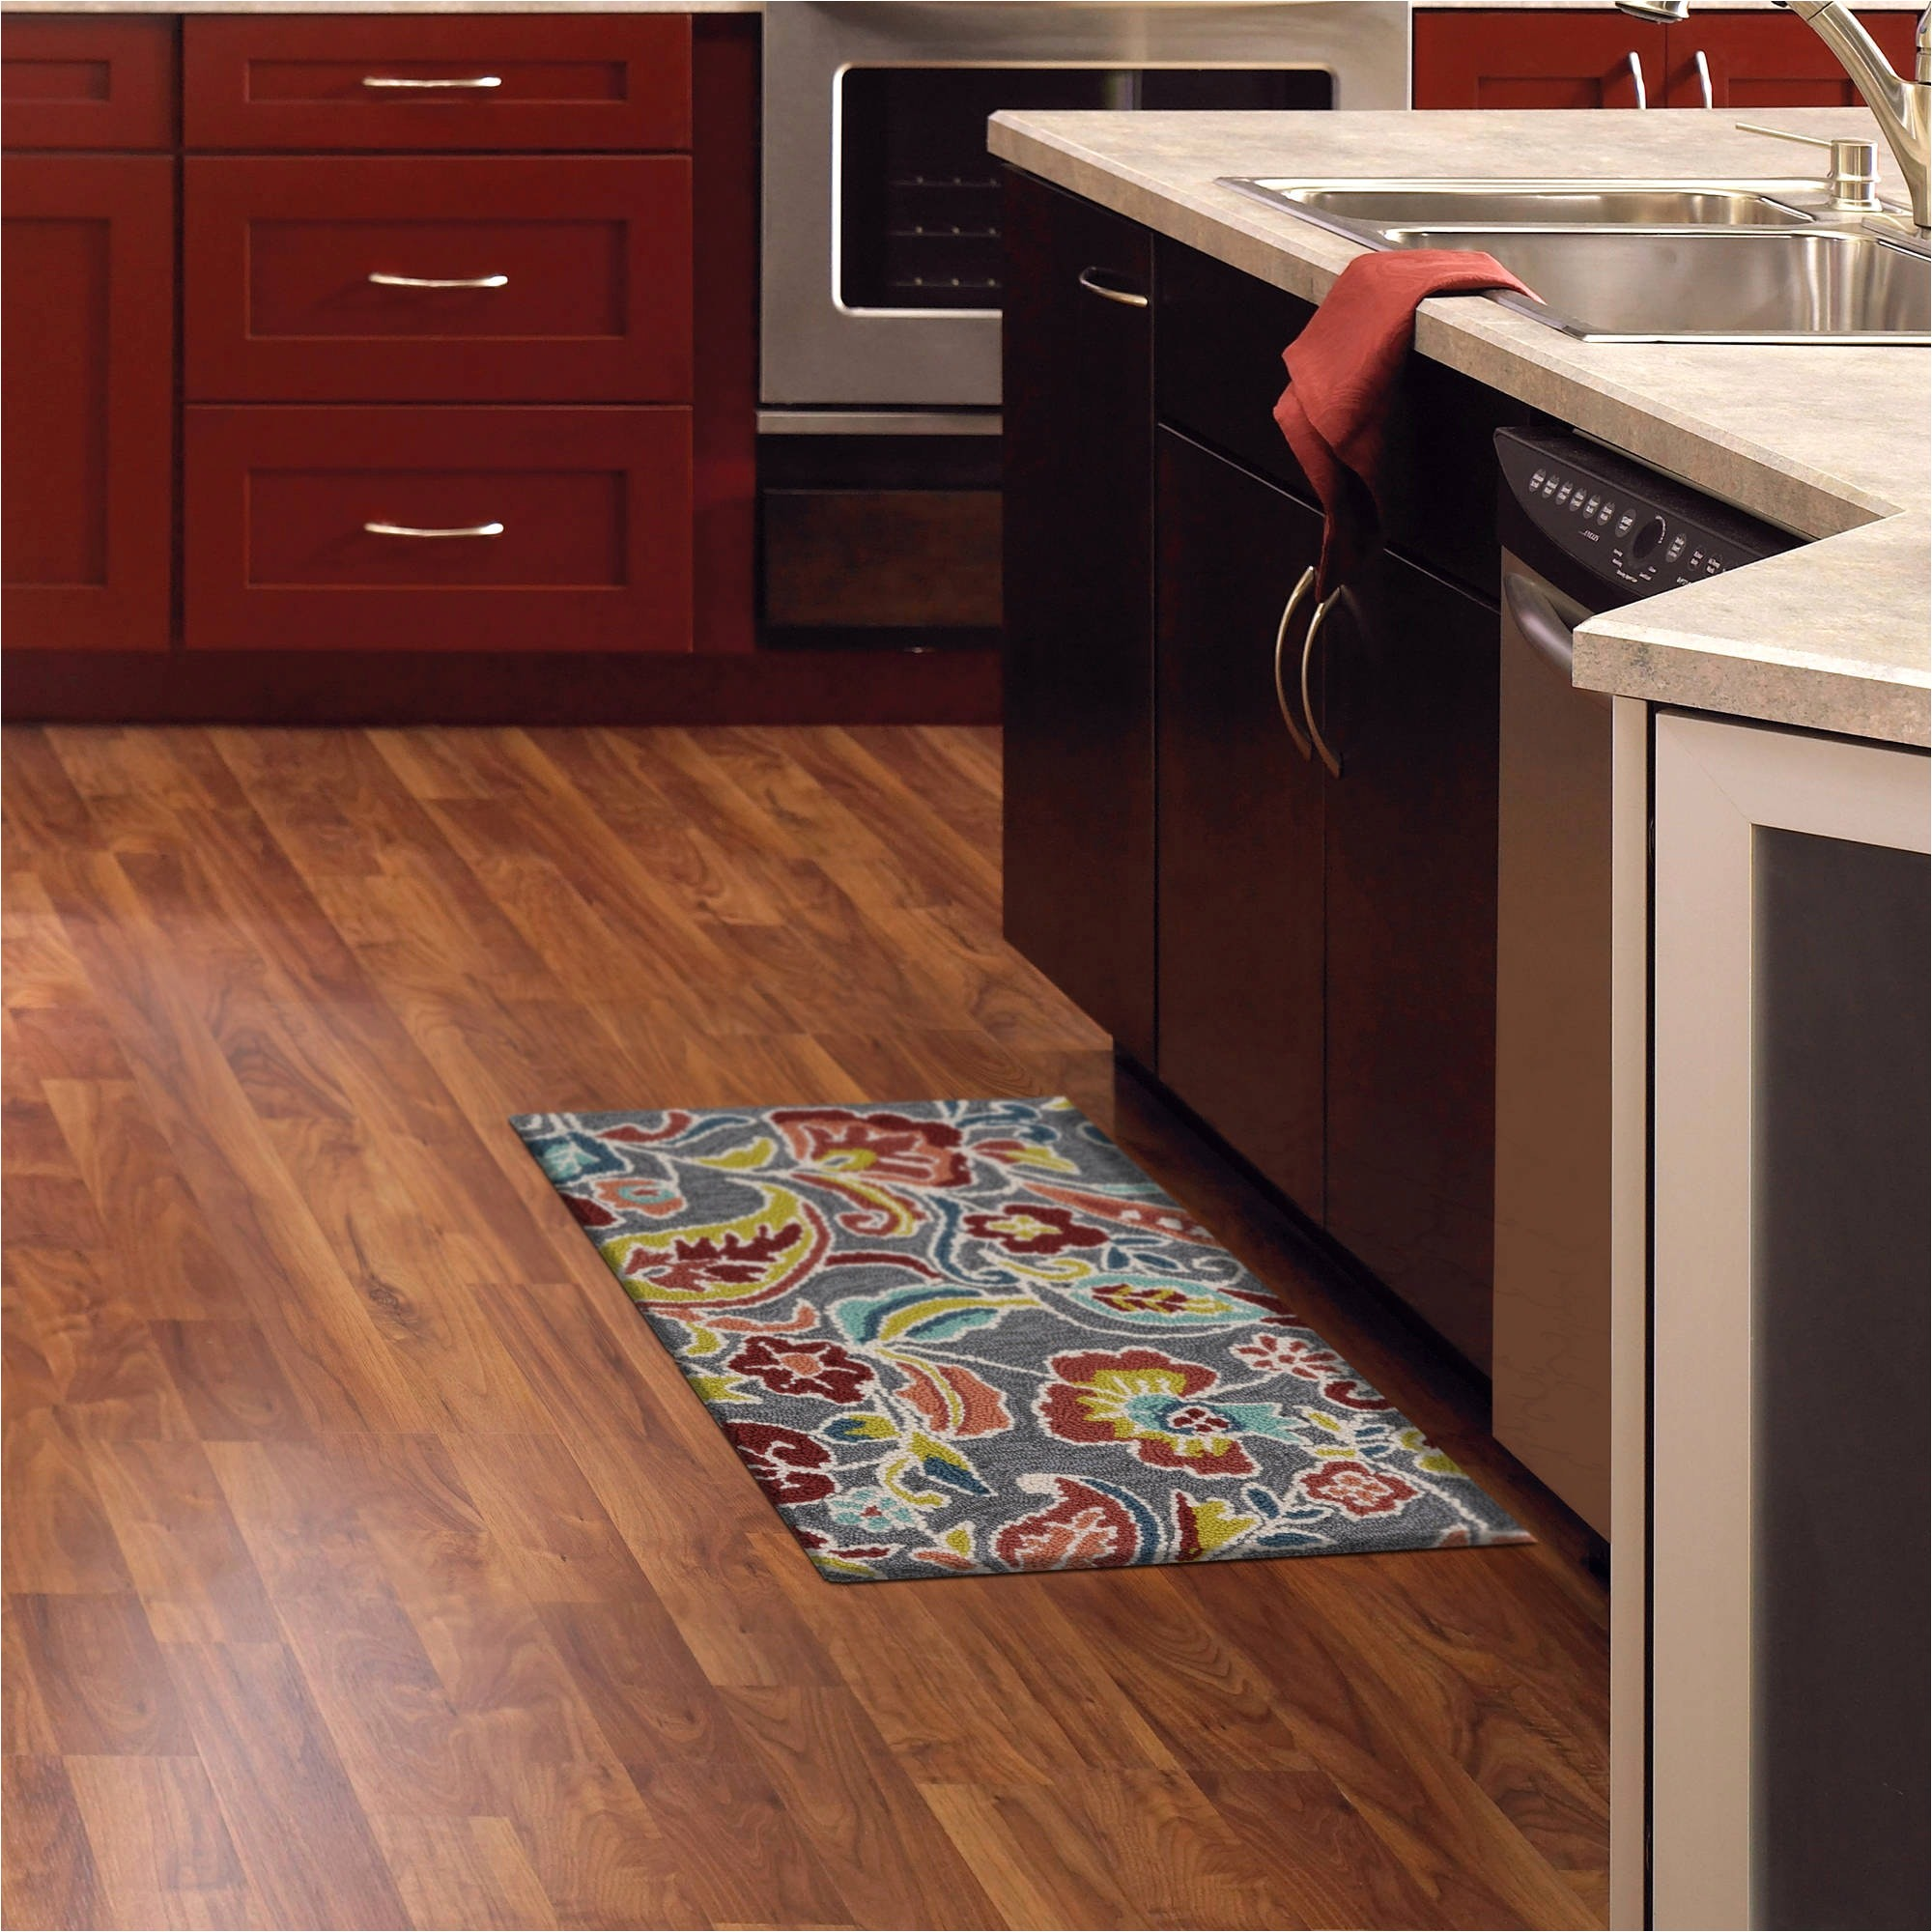 Mon Chateau Anti Fatigue Mat Reviews Best Anti Fatigue Kitchen Floor Mat Wow Blog